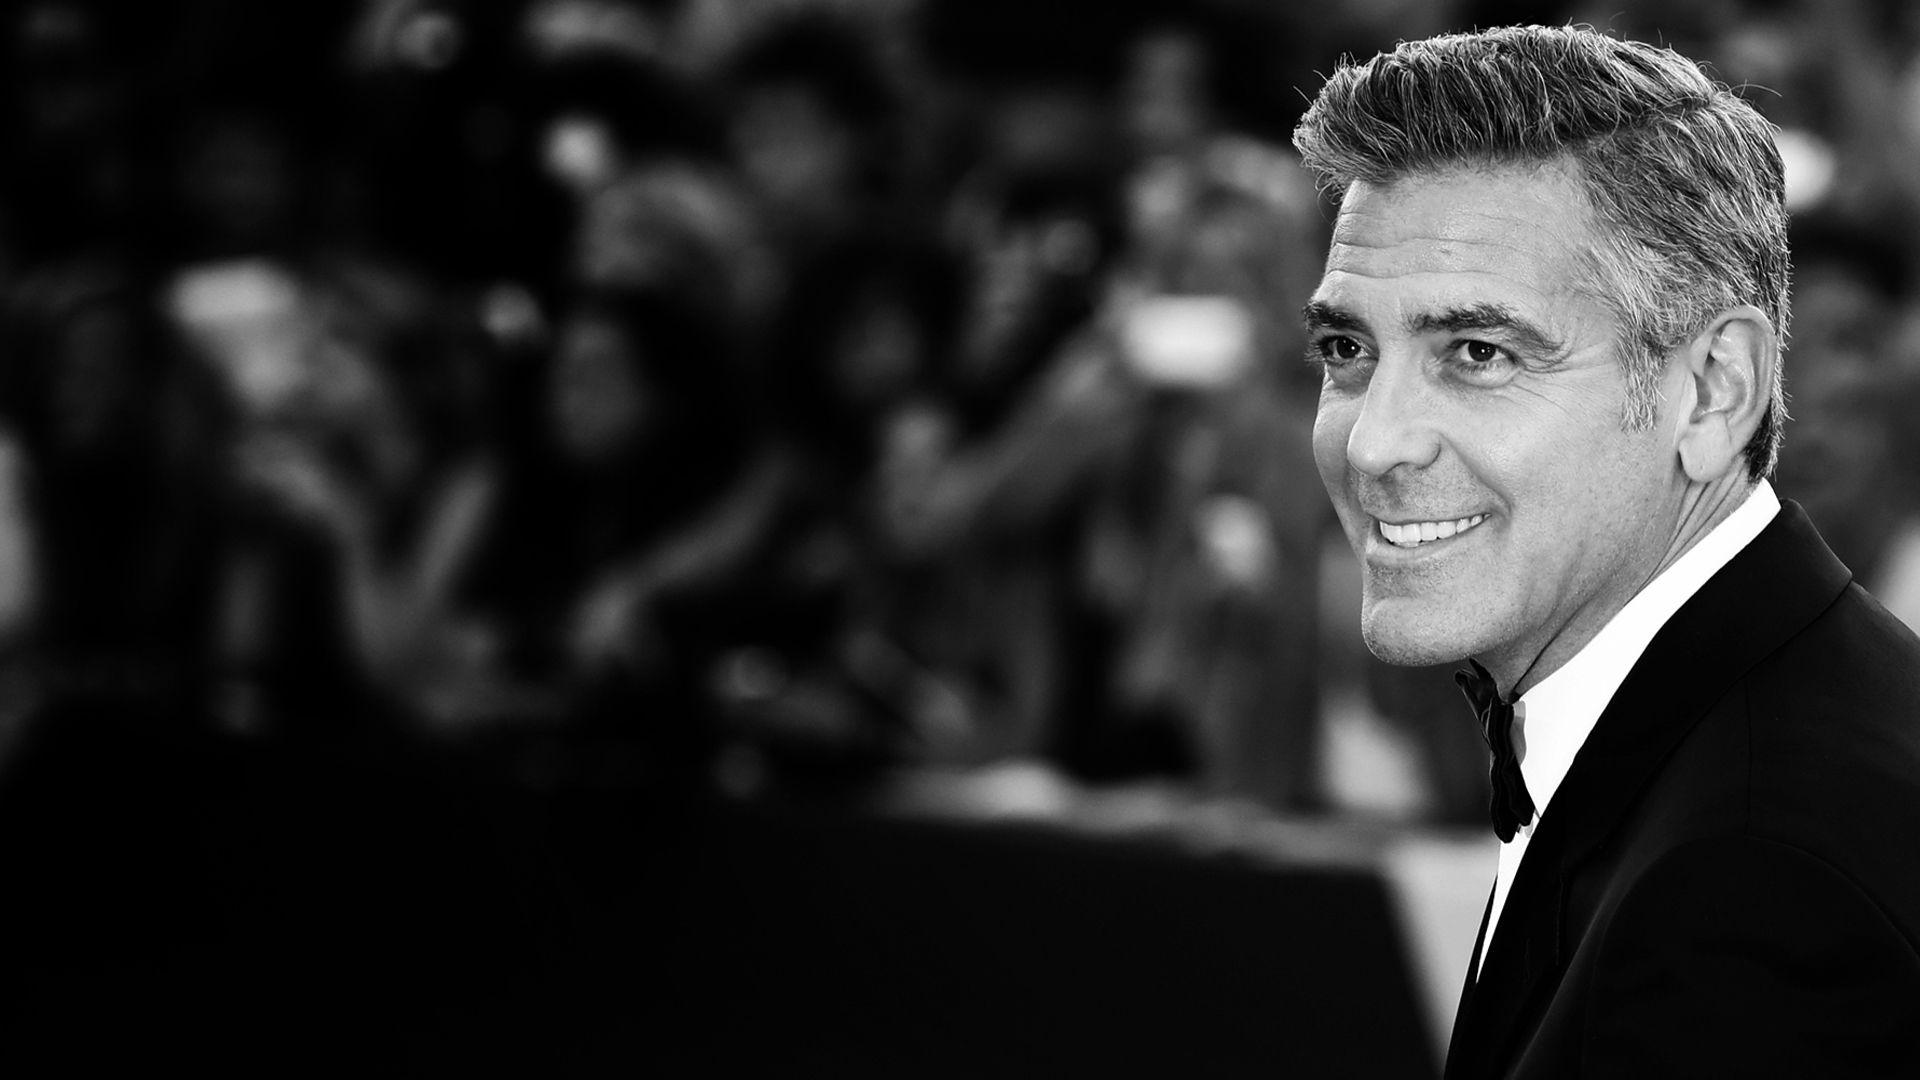 George Clooney Wallpapers   Top George Clooney Backgrounds 1920x1080